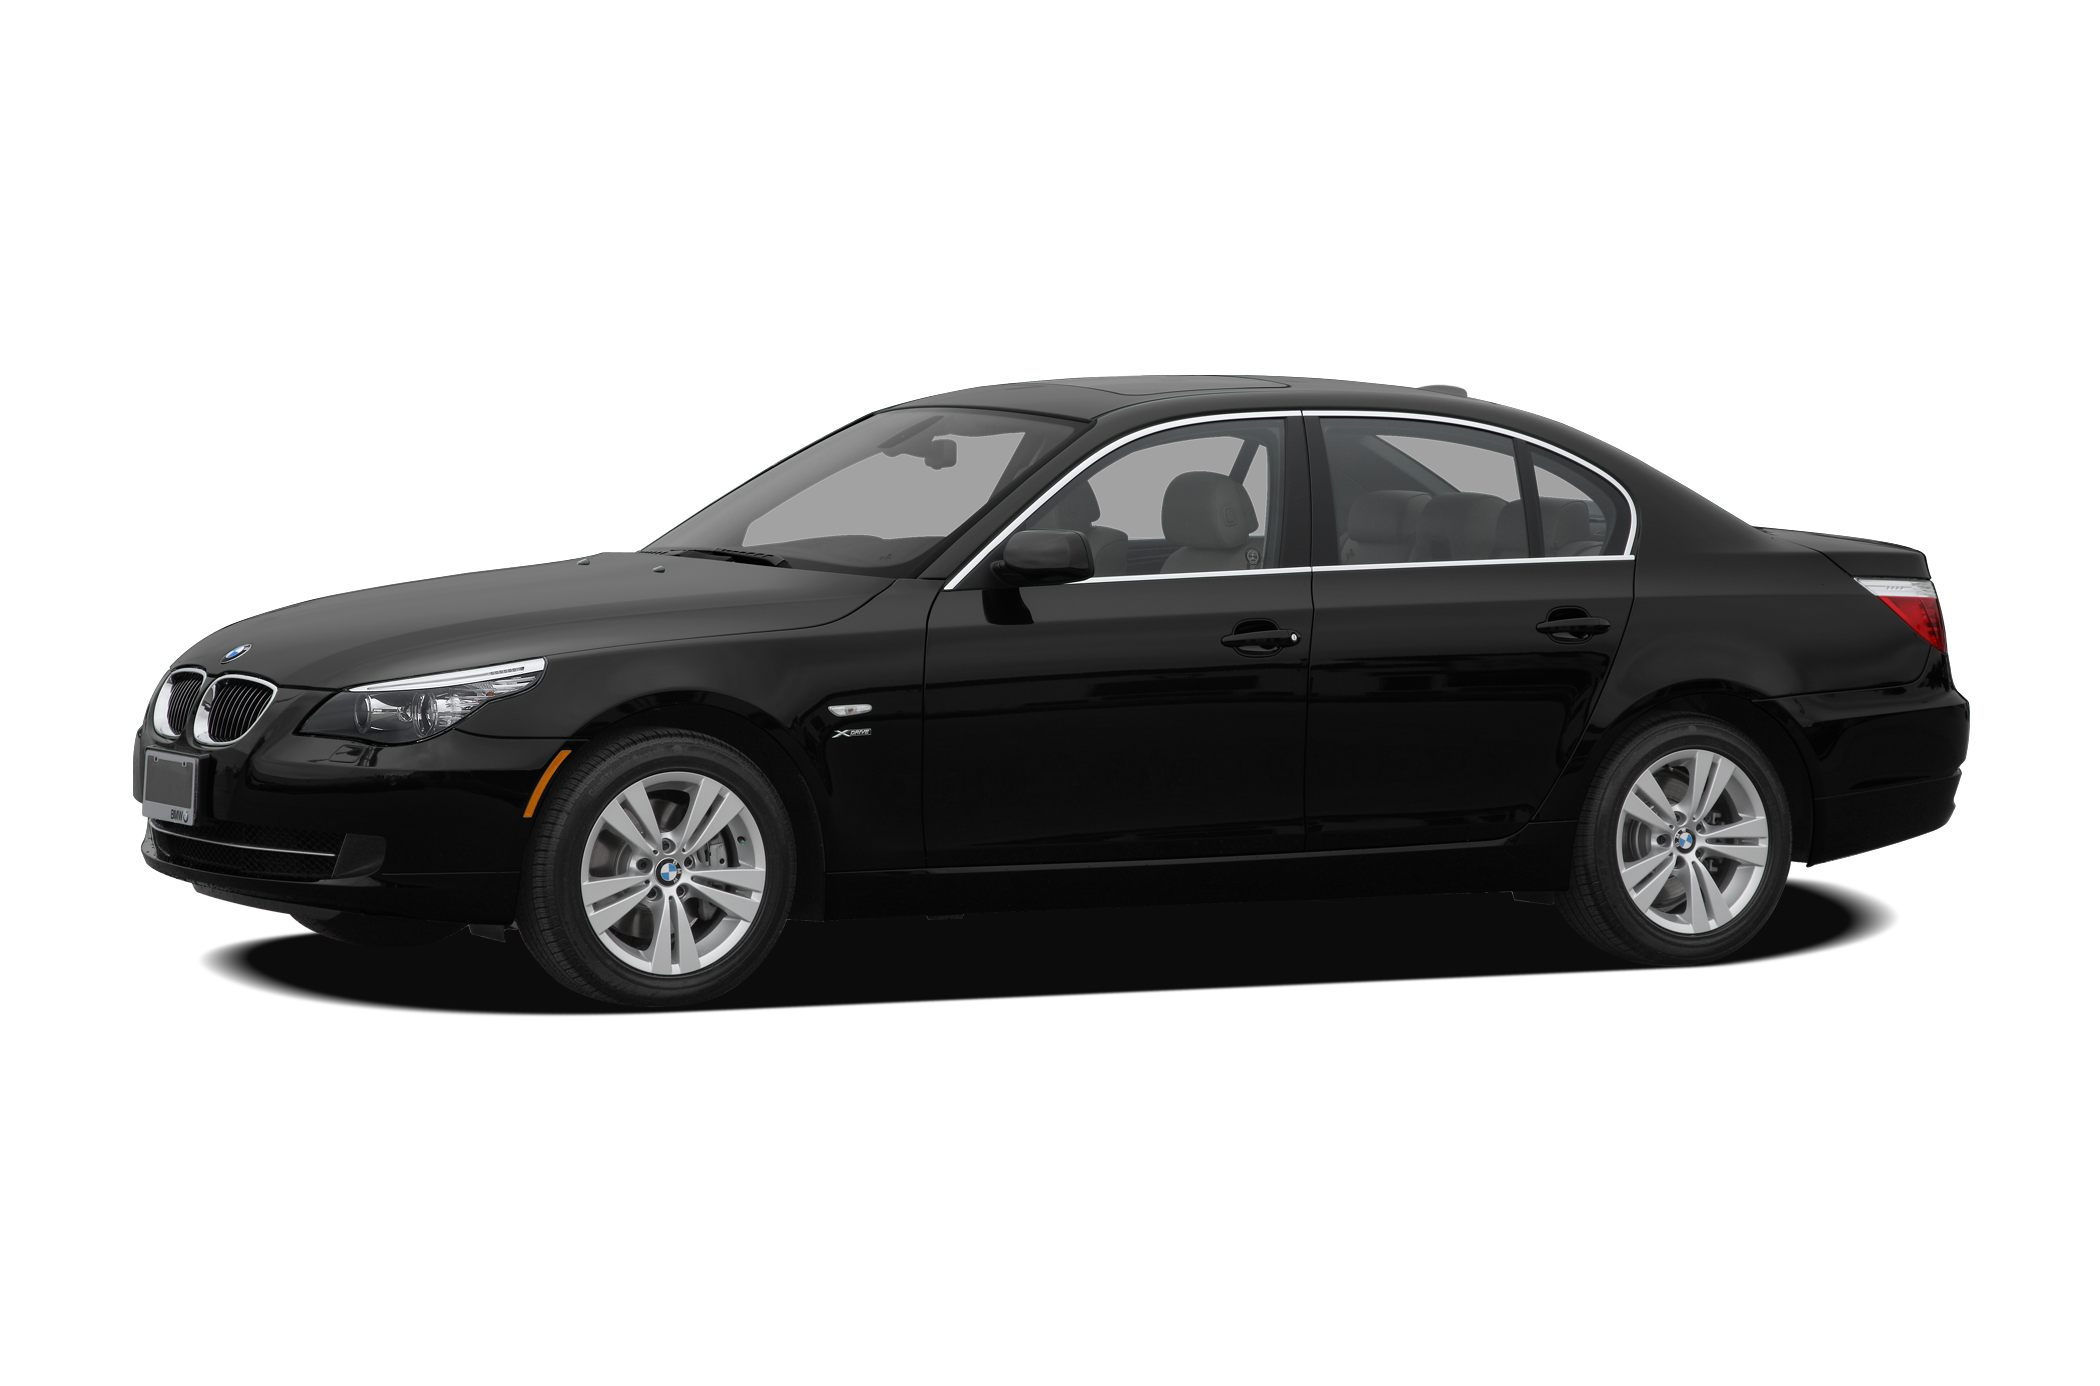 2009 BMW 535 Xi Sedan for sale in Appleton for $52,760 with 8,808 miles.